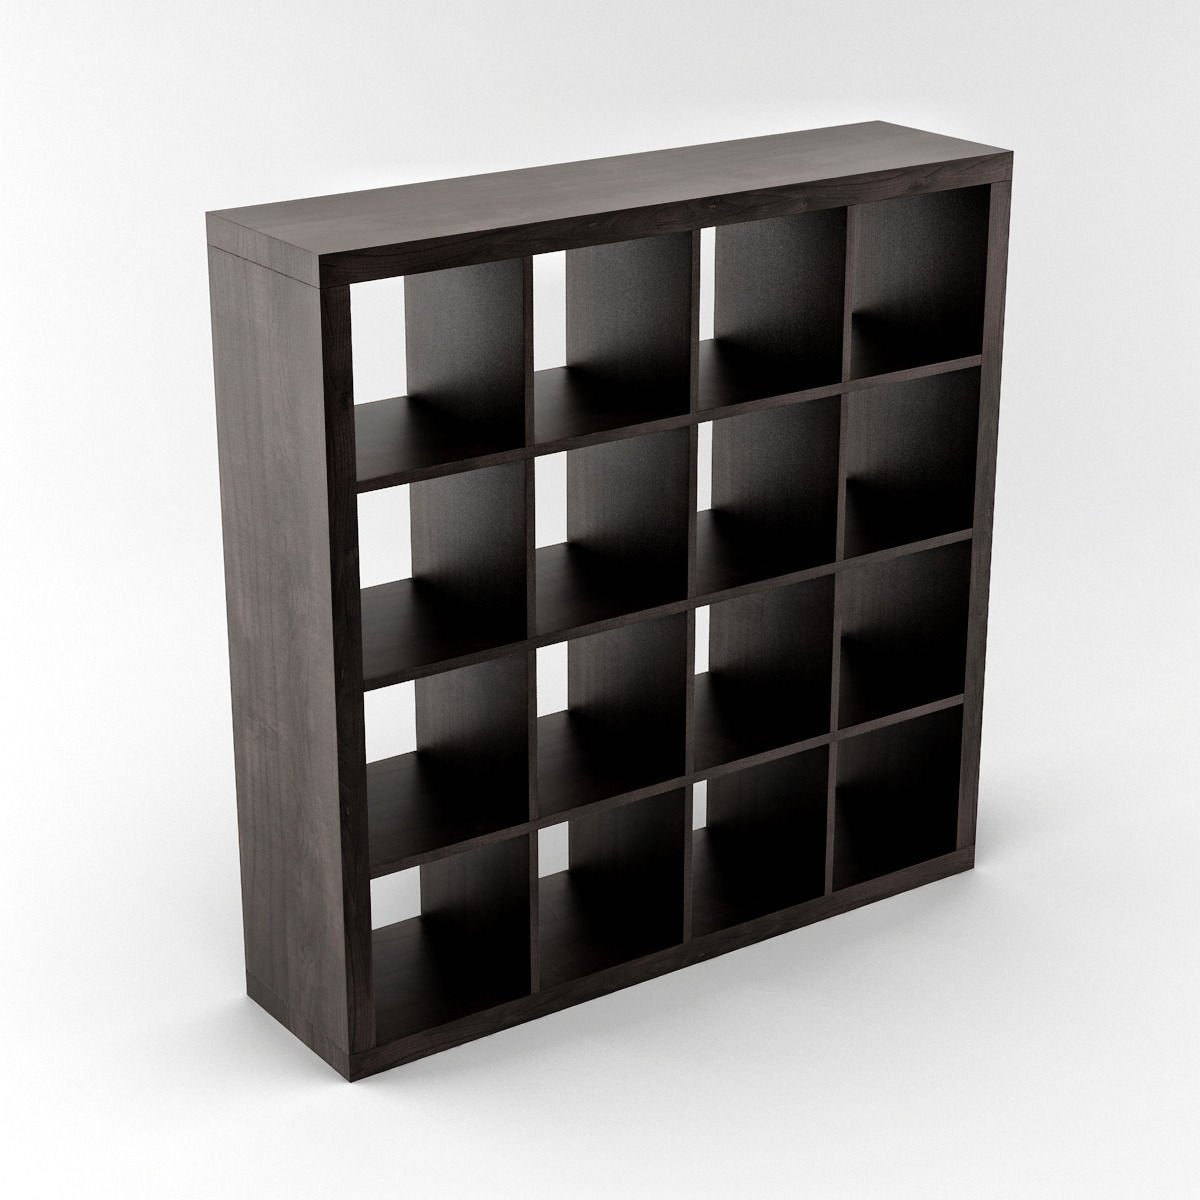 Ikea Expedit Schubladen Ikea Expedit Shelving Unit 04 3d Model Max Cgtrader